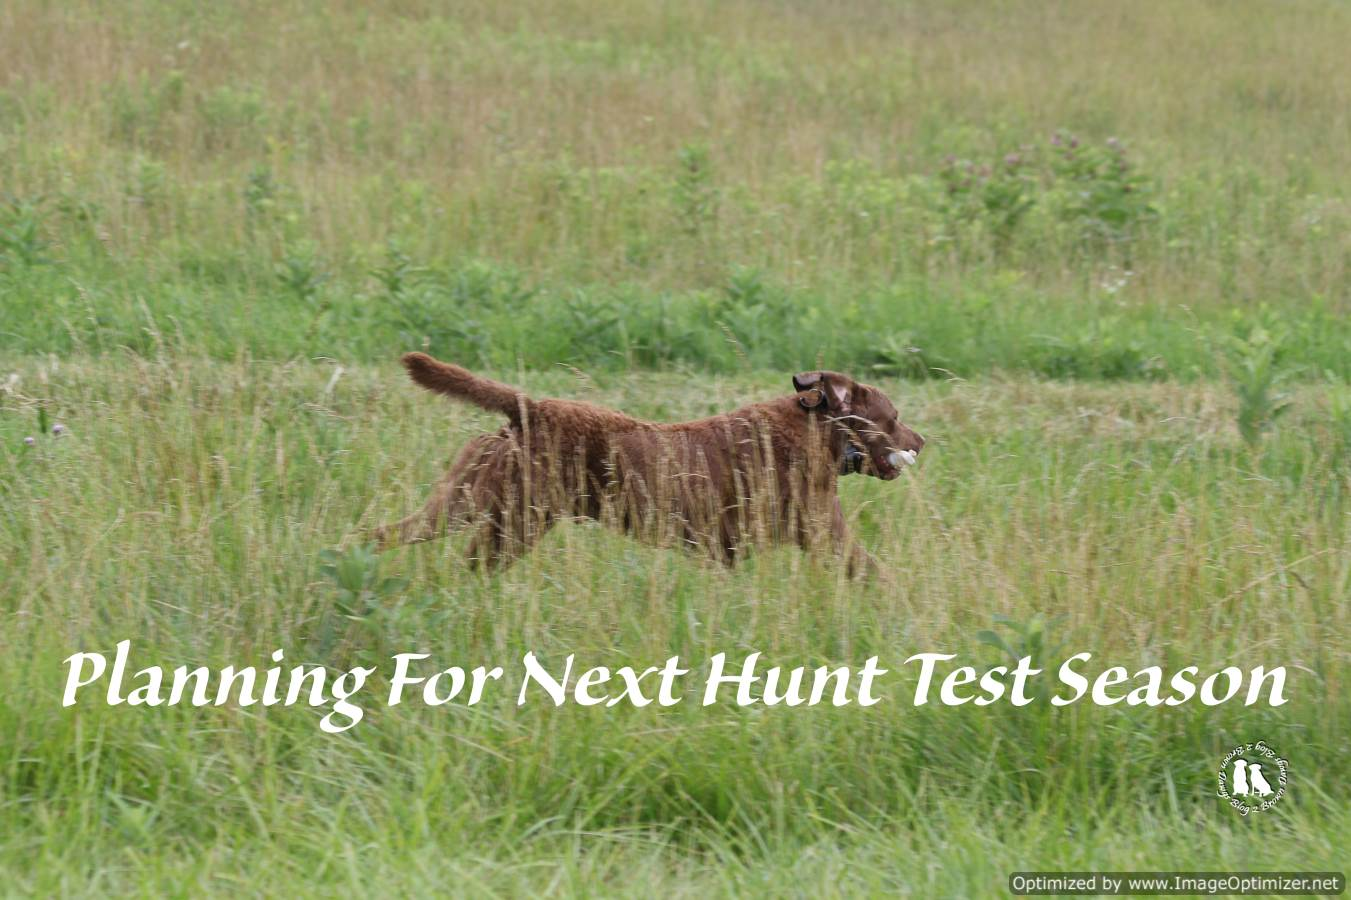 Planning For Next Hunt Test Season